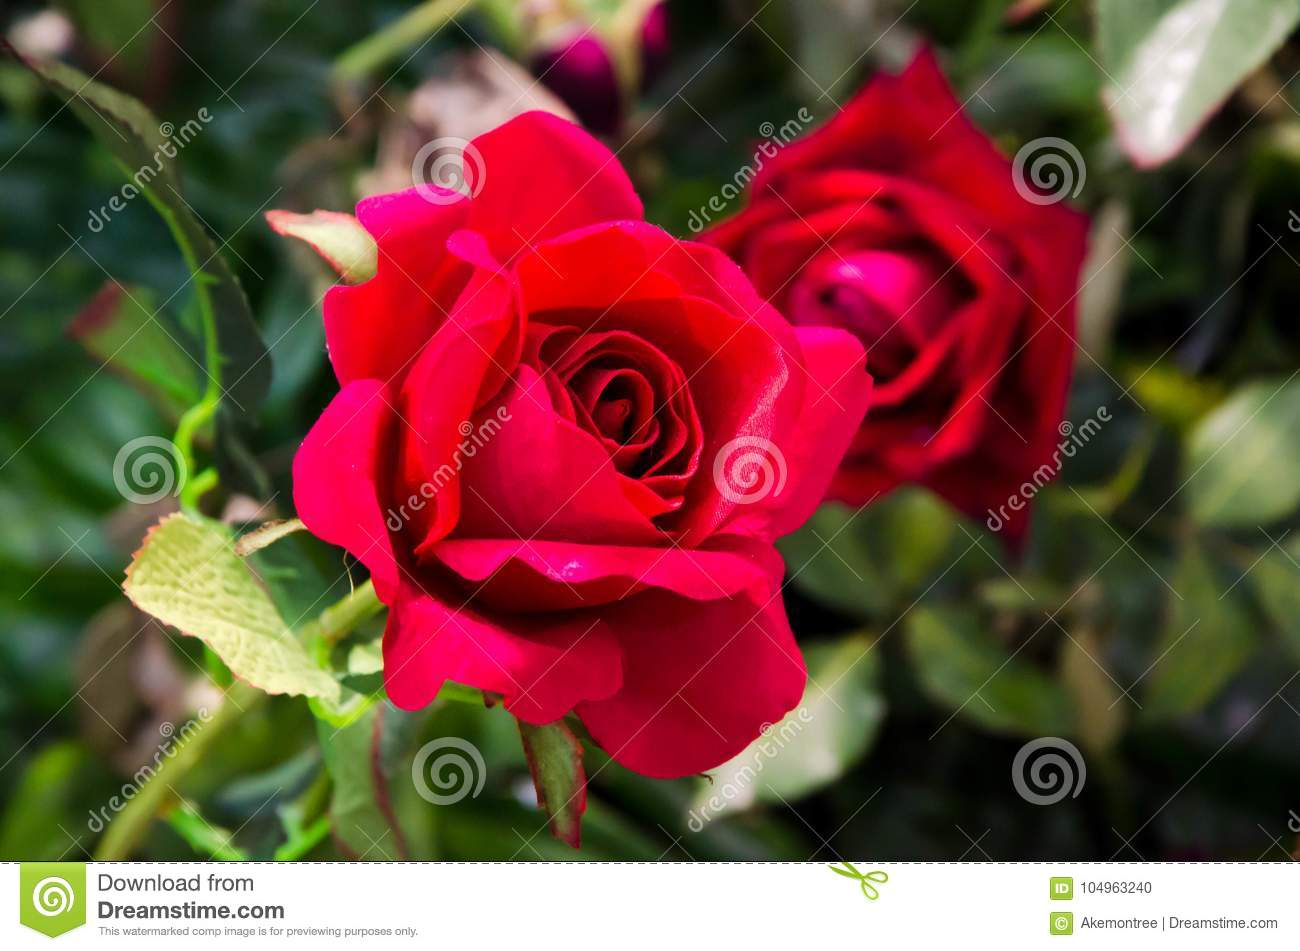 Love Garden Roses: Bouquet Of Red Rose On Bush In Green Garden Stock Photo